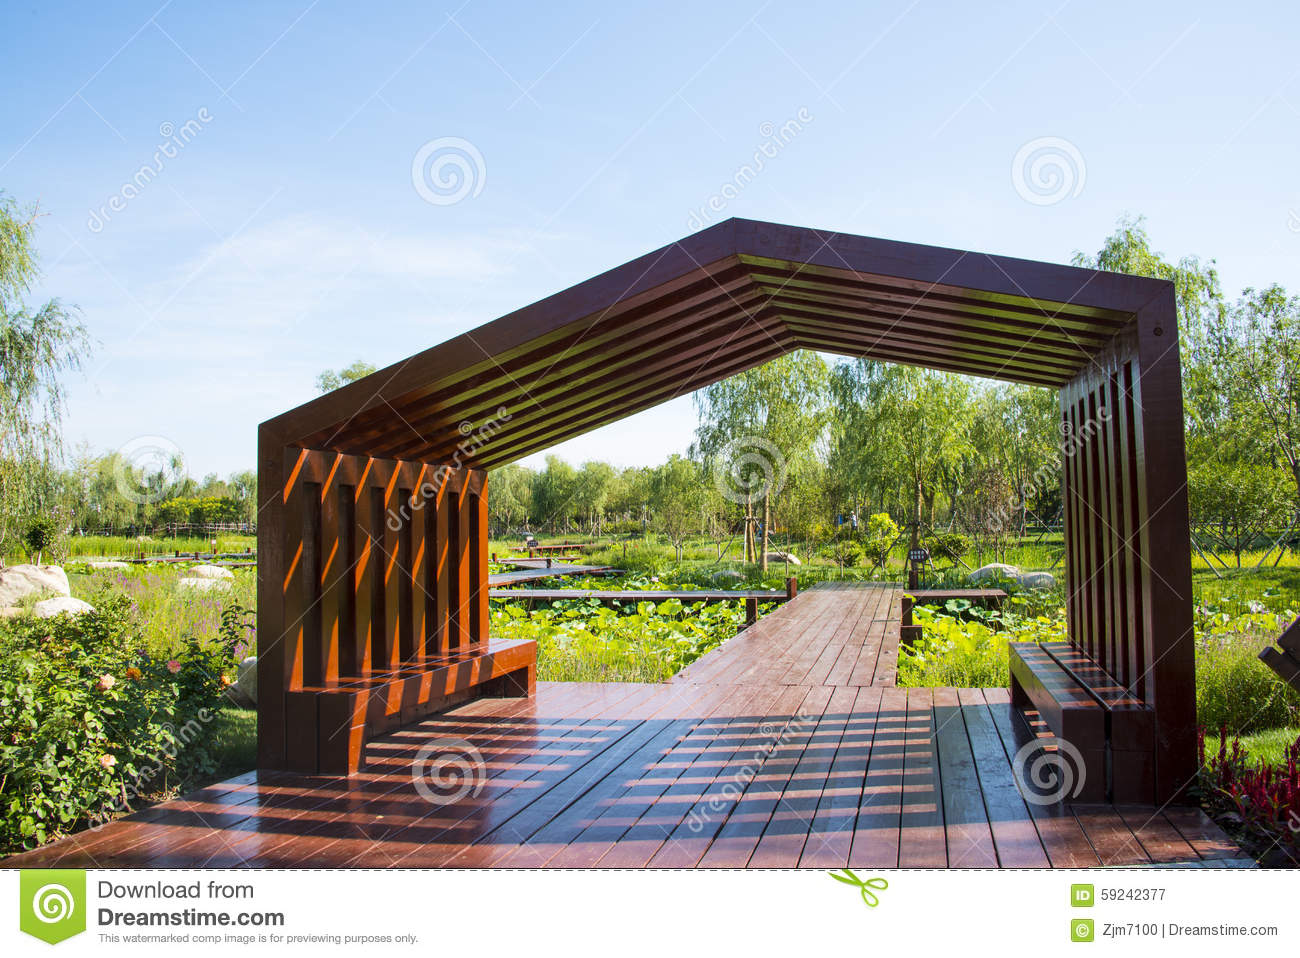 architecture asian chinese expo garden - Garden Architecture Design